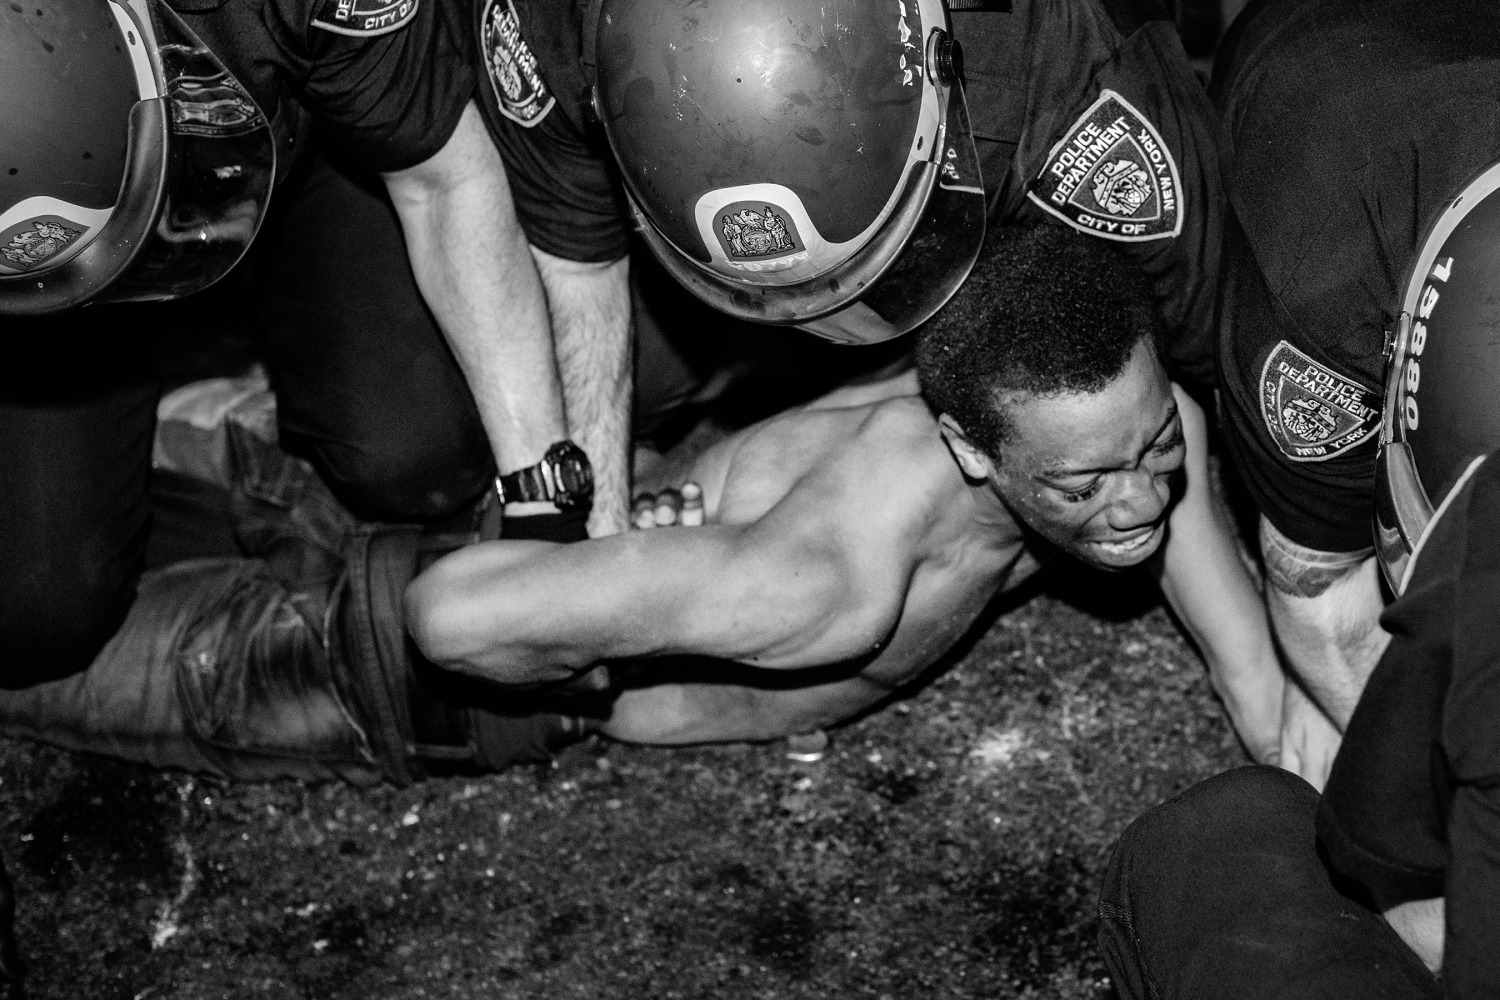 A protestor is being arrest by NYPD officers during clashes between police and demonstrators in Brooklyn, New York, May 30, 2020. (PHOTO: Amr Alfiky)